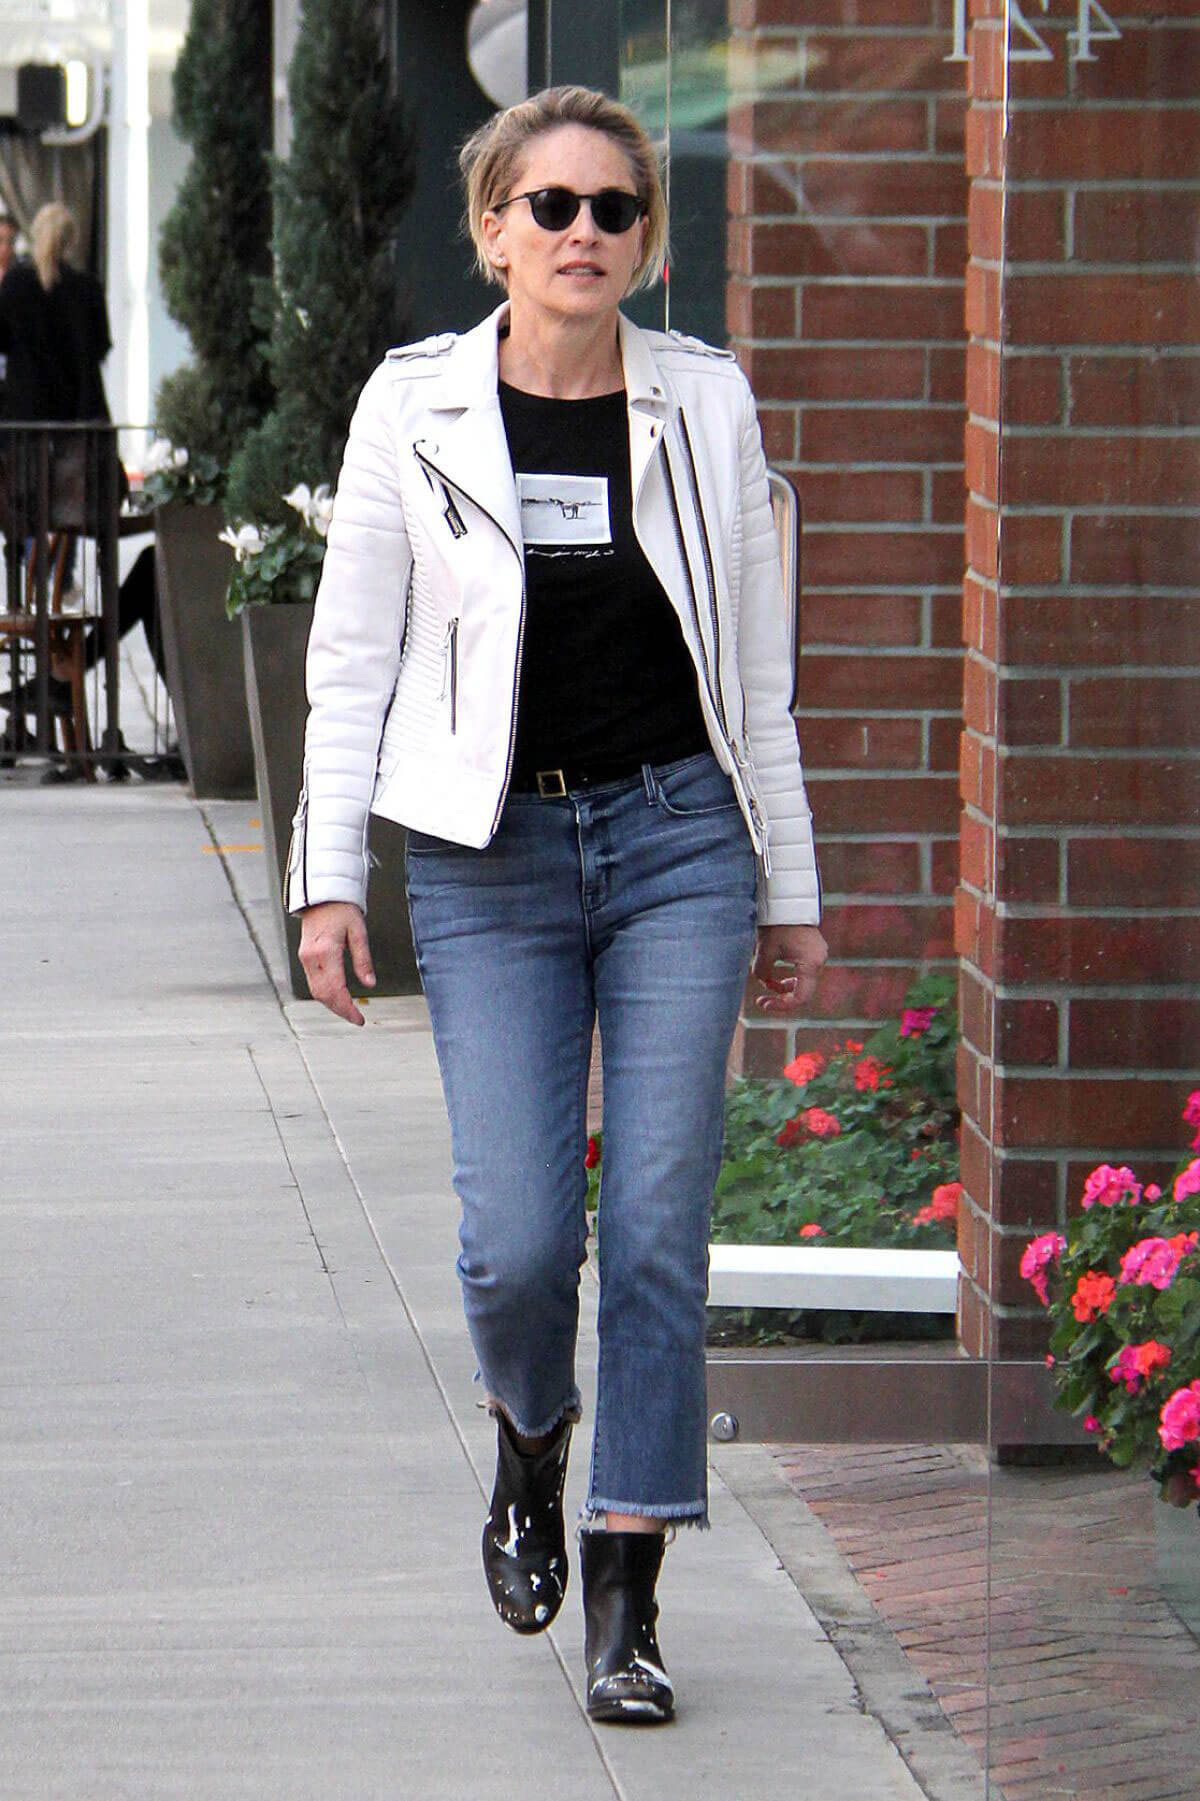 Sharon Stone at a Nail Salon in Beverly Hills